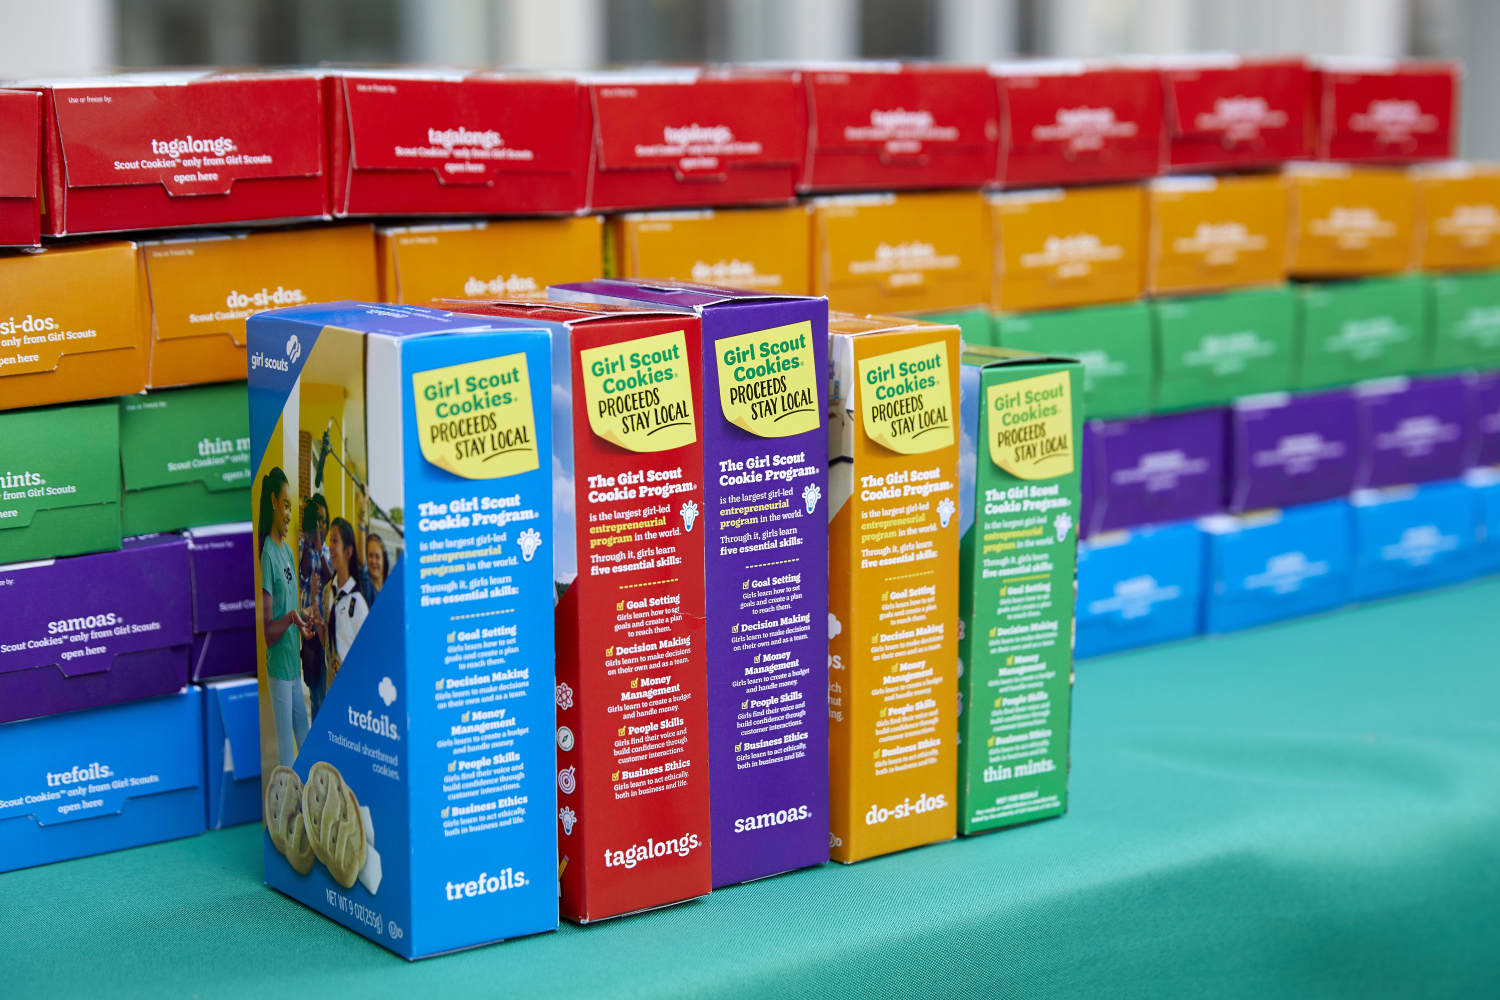 Here's What You Need to Know About the BRAND NEW Girl Scout Cookie